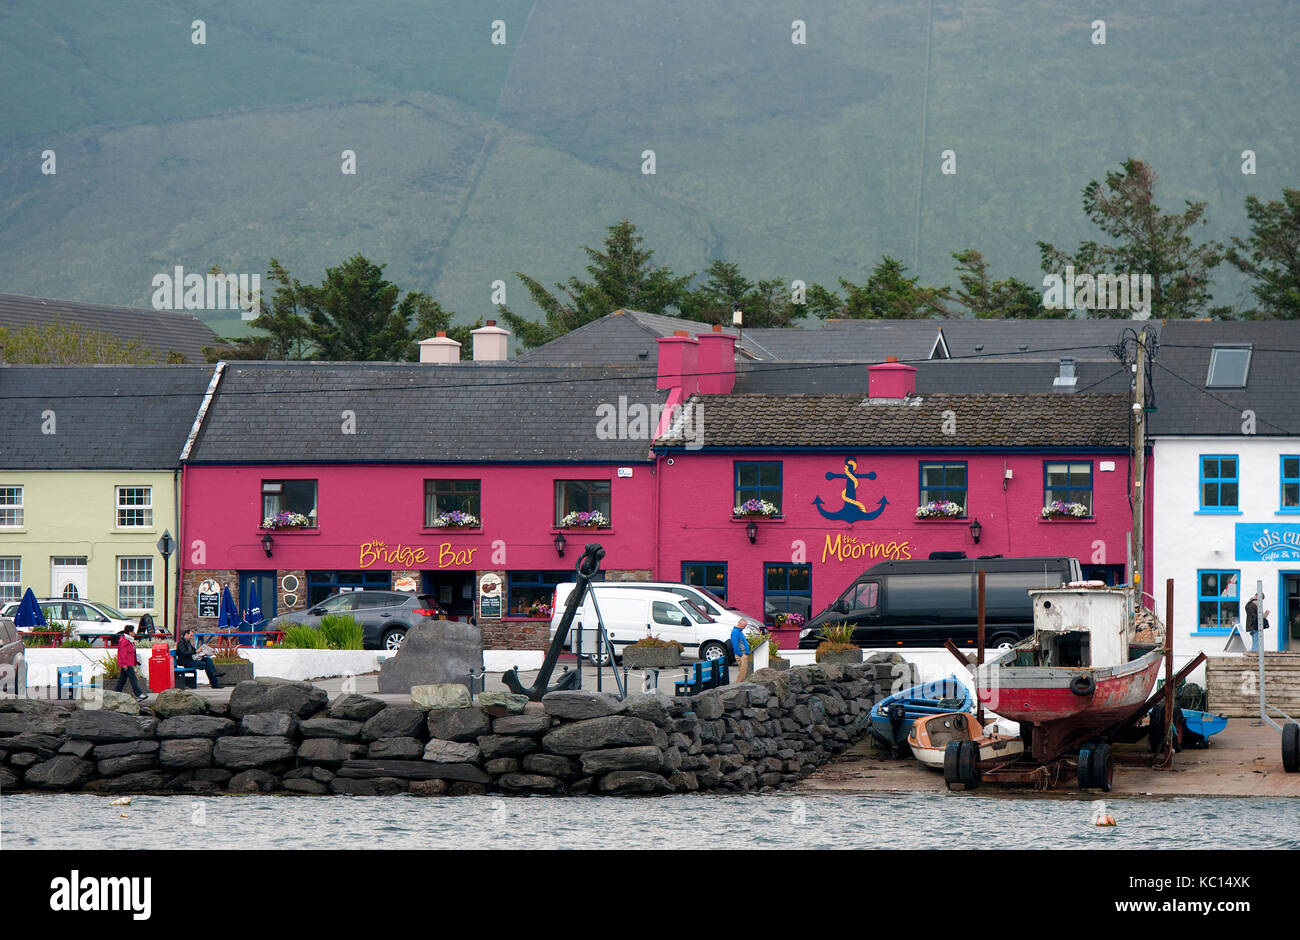 Bridge Bar and The Moorings guesthouse in Portmagee harbour, County Kerry, Ireland - Stock Image